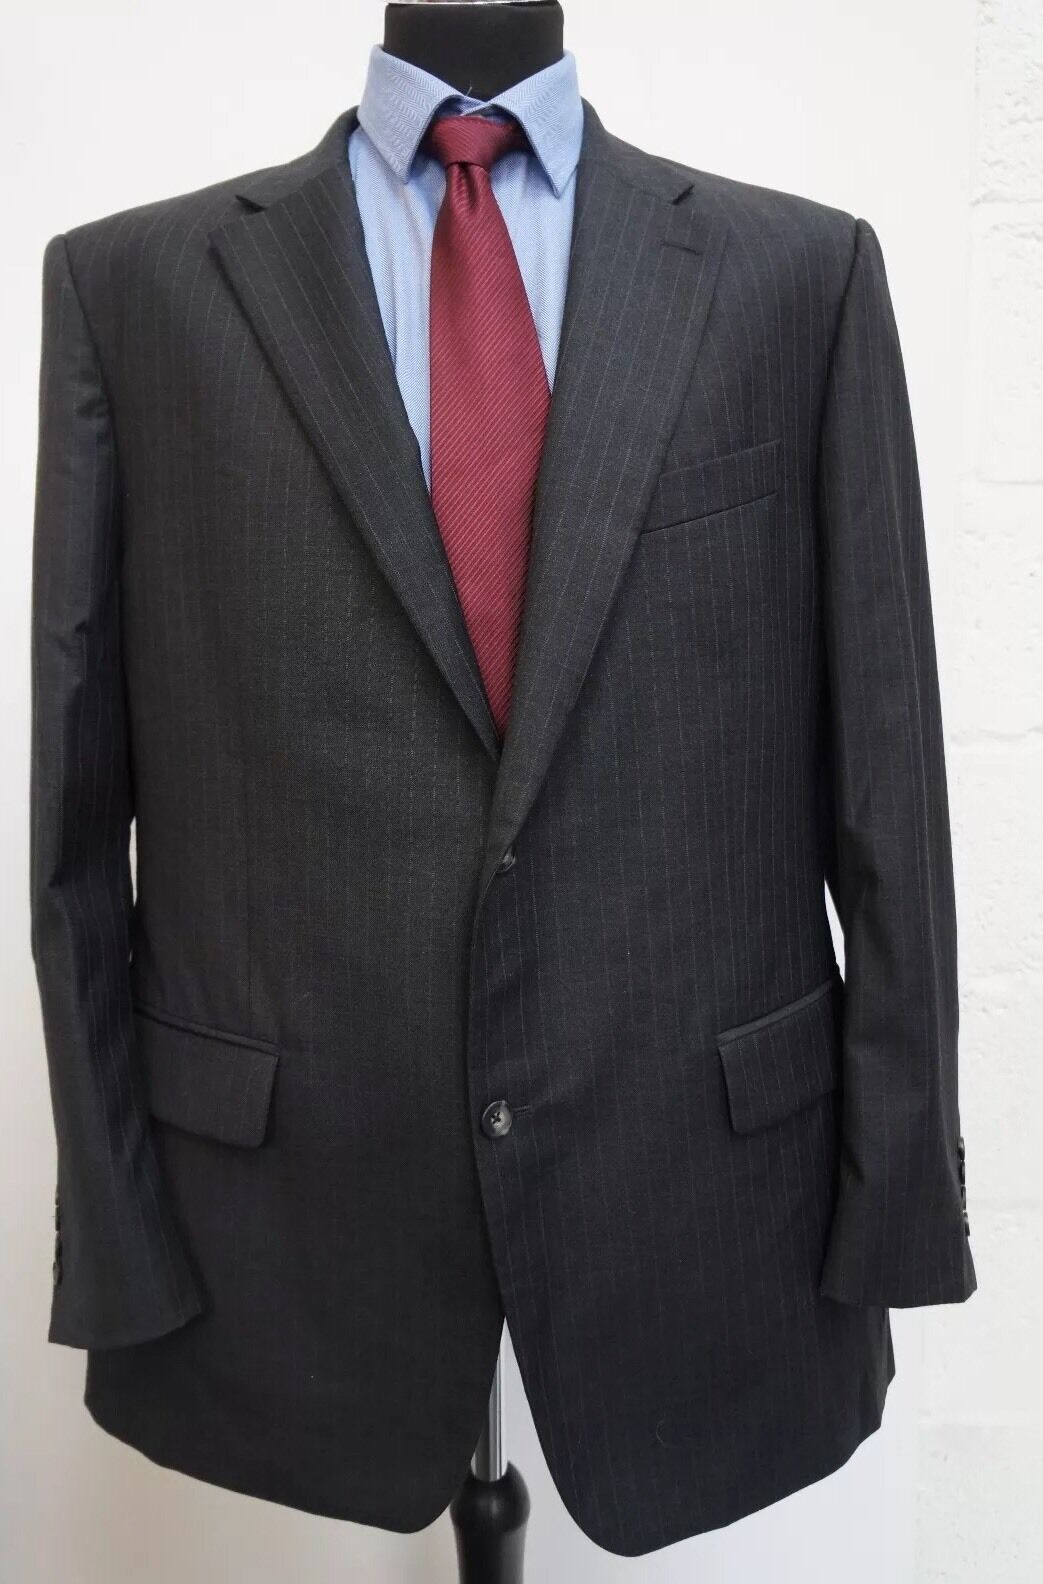 MS14  GREENWOODS ELITE  MEN'S GREY STRIPED WOOL BLEND  CHEST  46R  W 42R   L32